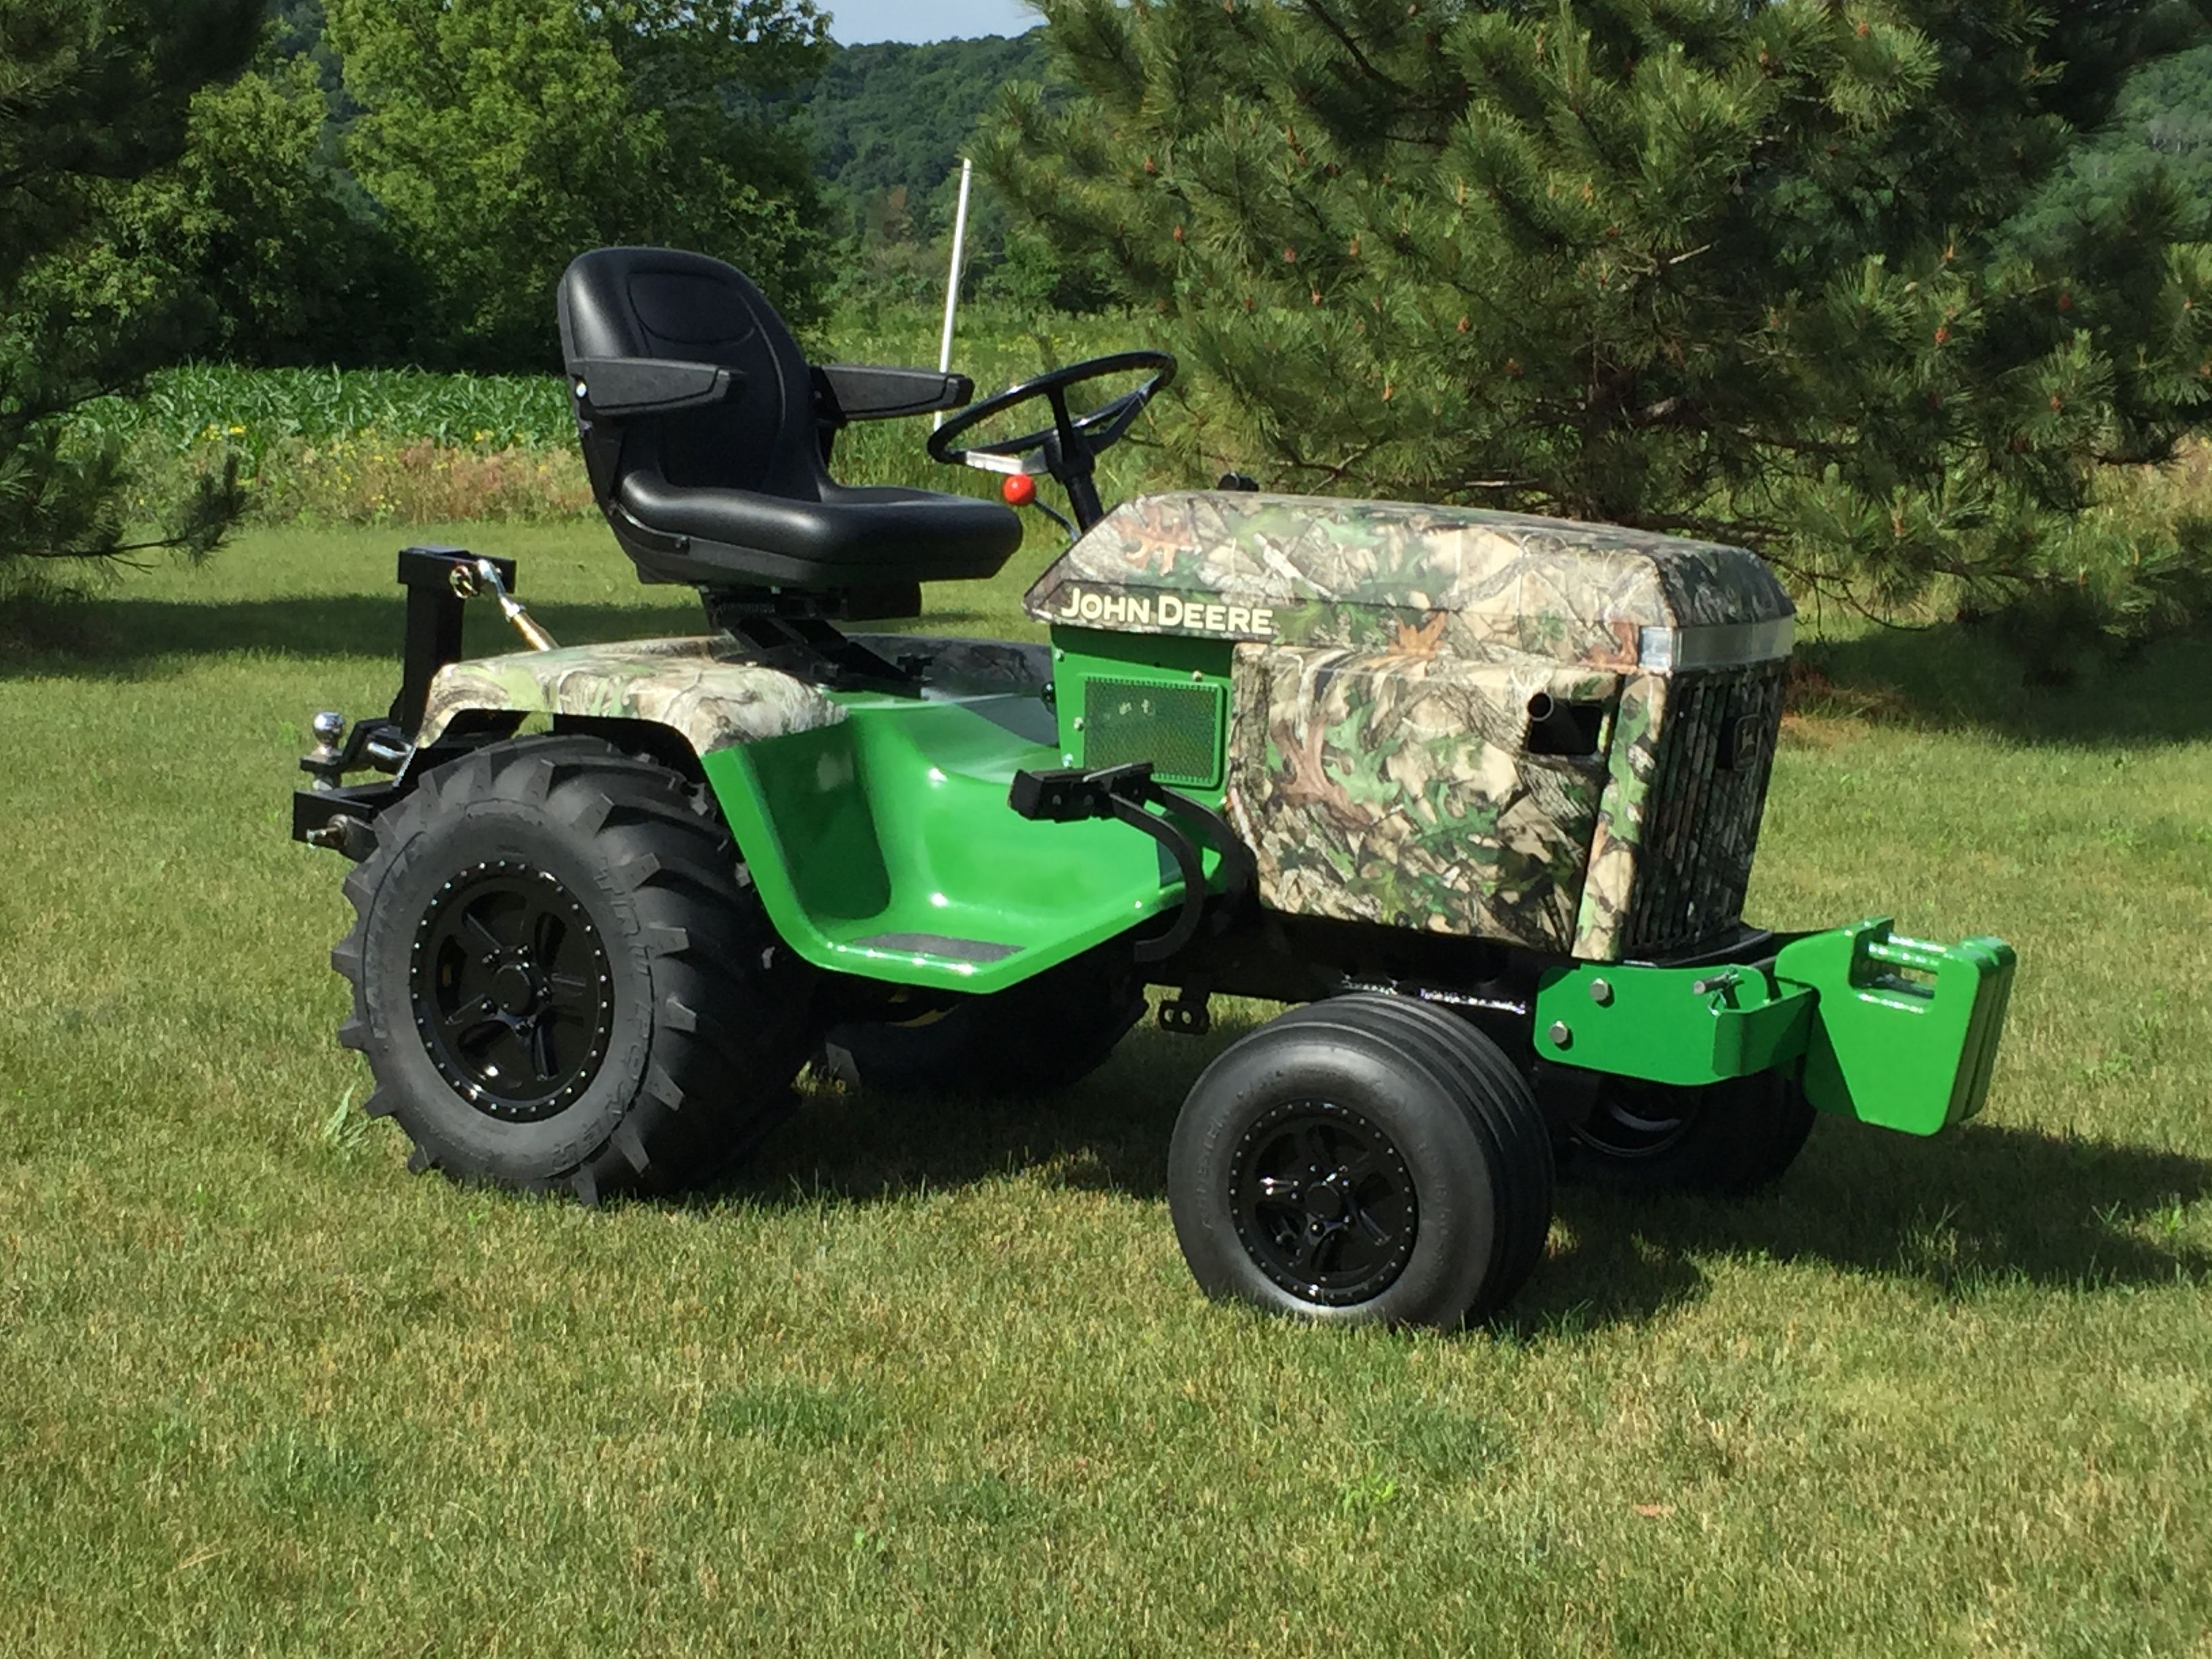 Hydrographic on an old John Deere 318 Lawn tractors